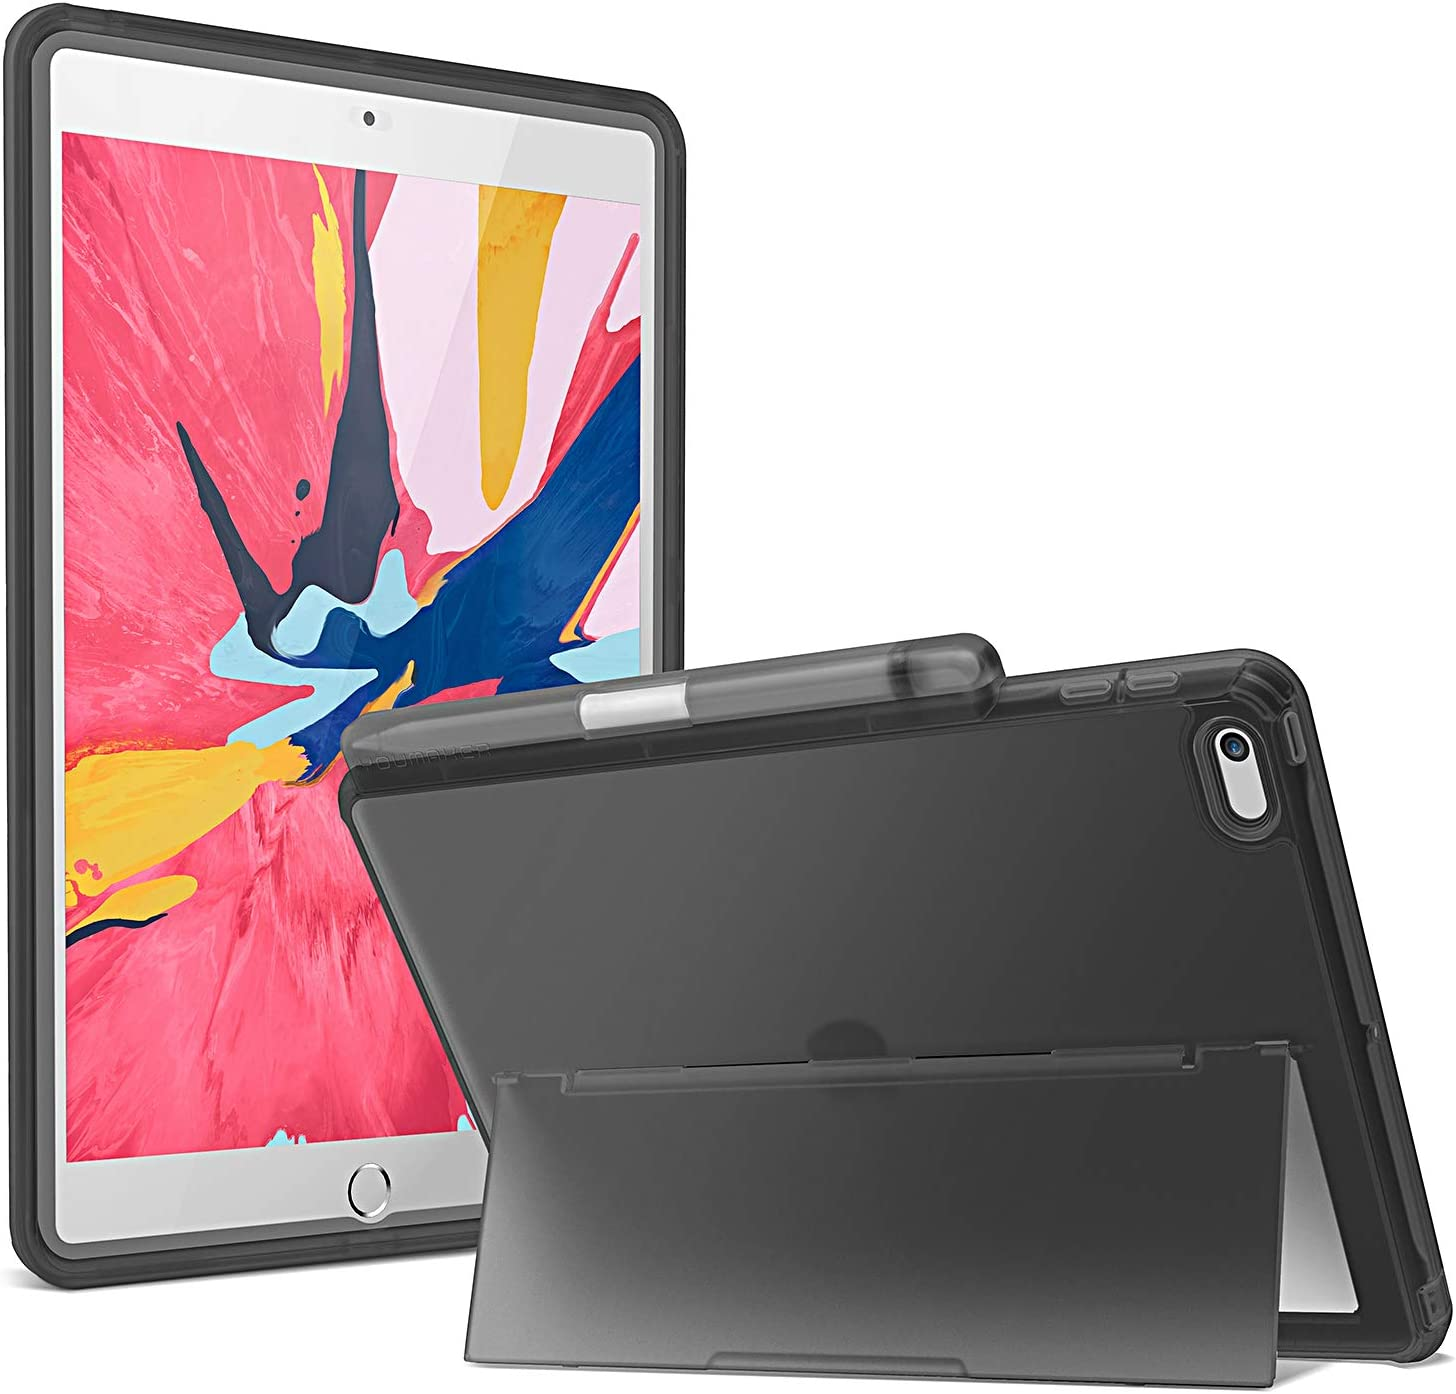 YOUMAKER Designed for iPad 10.2 Case 2019, Frosted Clear Kickstand Case with Built-in Screen Protector Full Body Rugged Protective Cover for iPad 7th Generation 10.2 Inch - Black